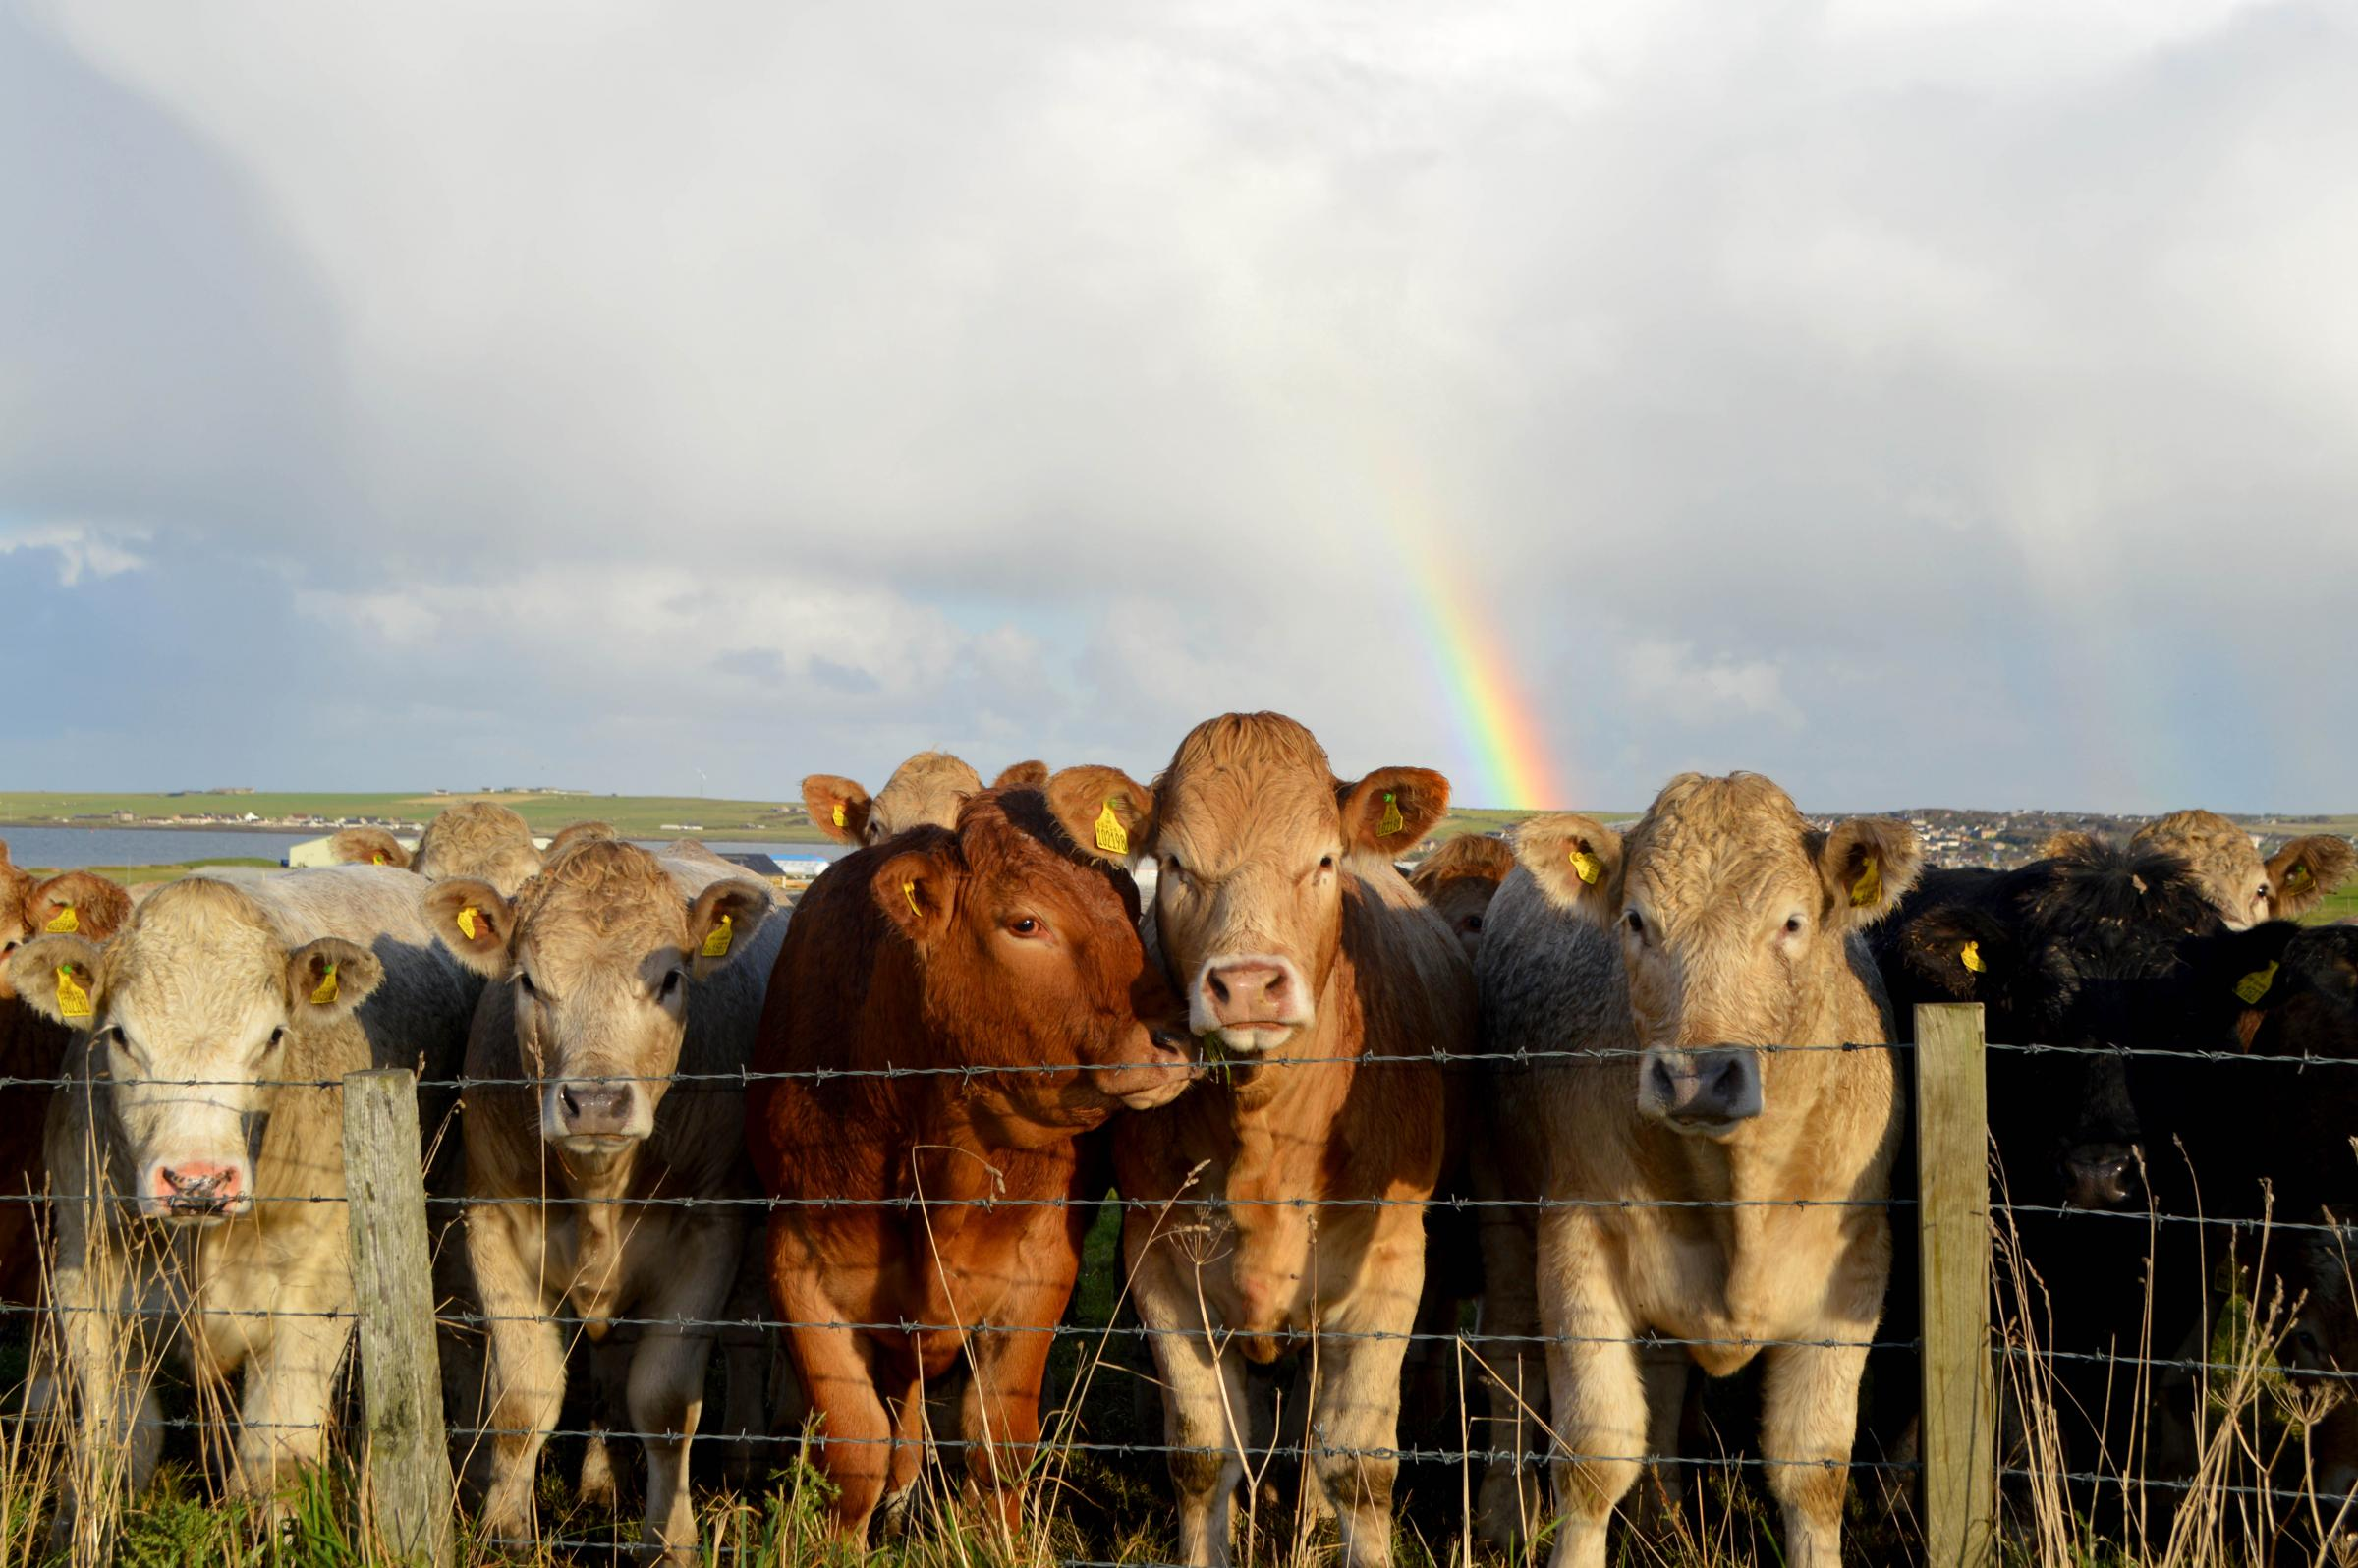 Beef cattle enjoying the hospitality of the nearby Orkney Auction Mart gather under the rainbow to see what treasures can be found in the outskirts of Kirkwall